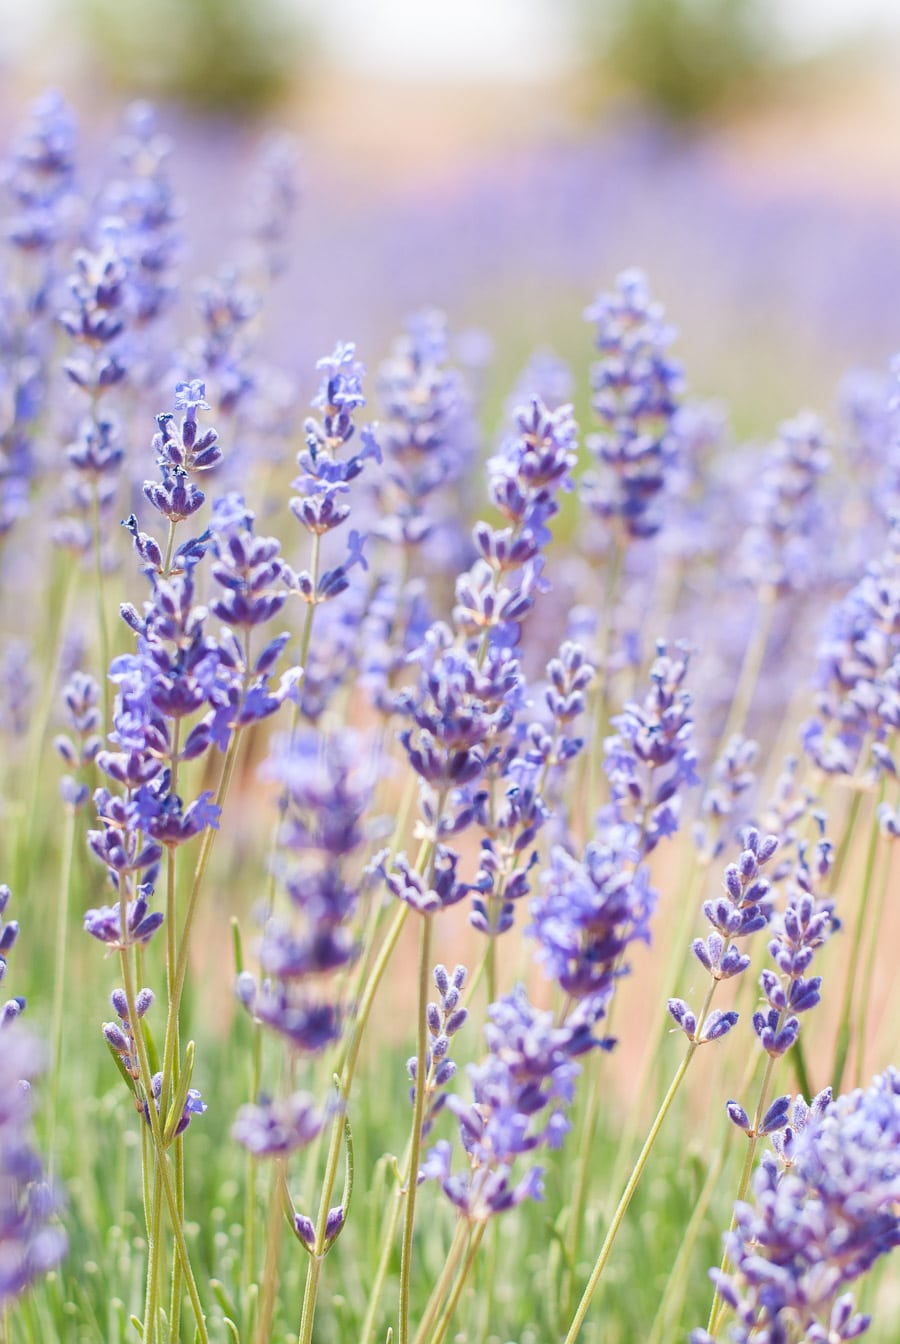 Close up image of a field of culinary lavender